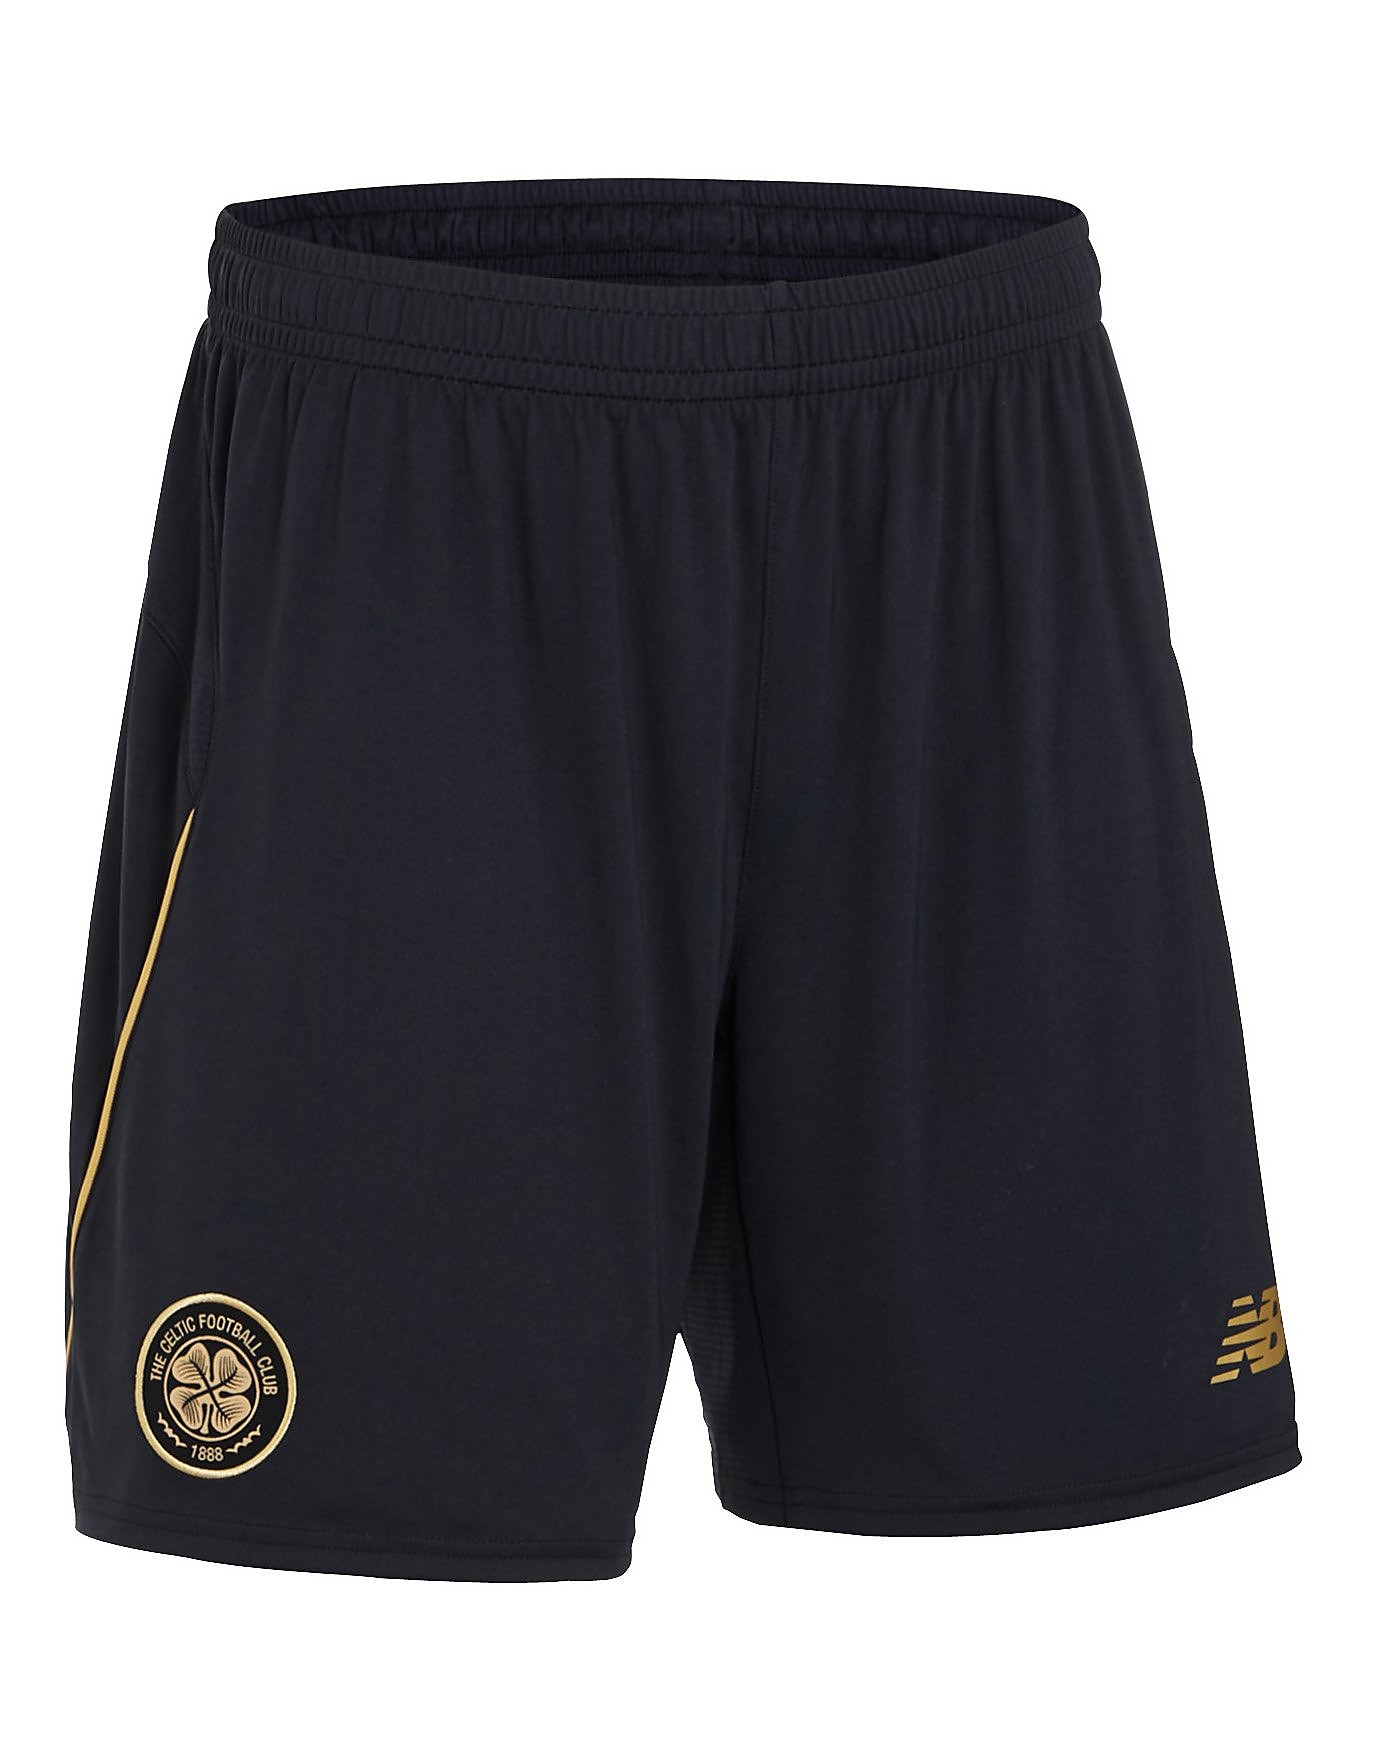 New Balance Celtic FC 2016/17 Away Shorts